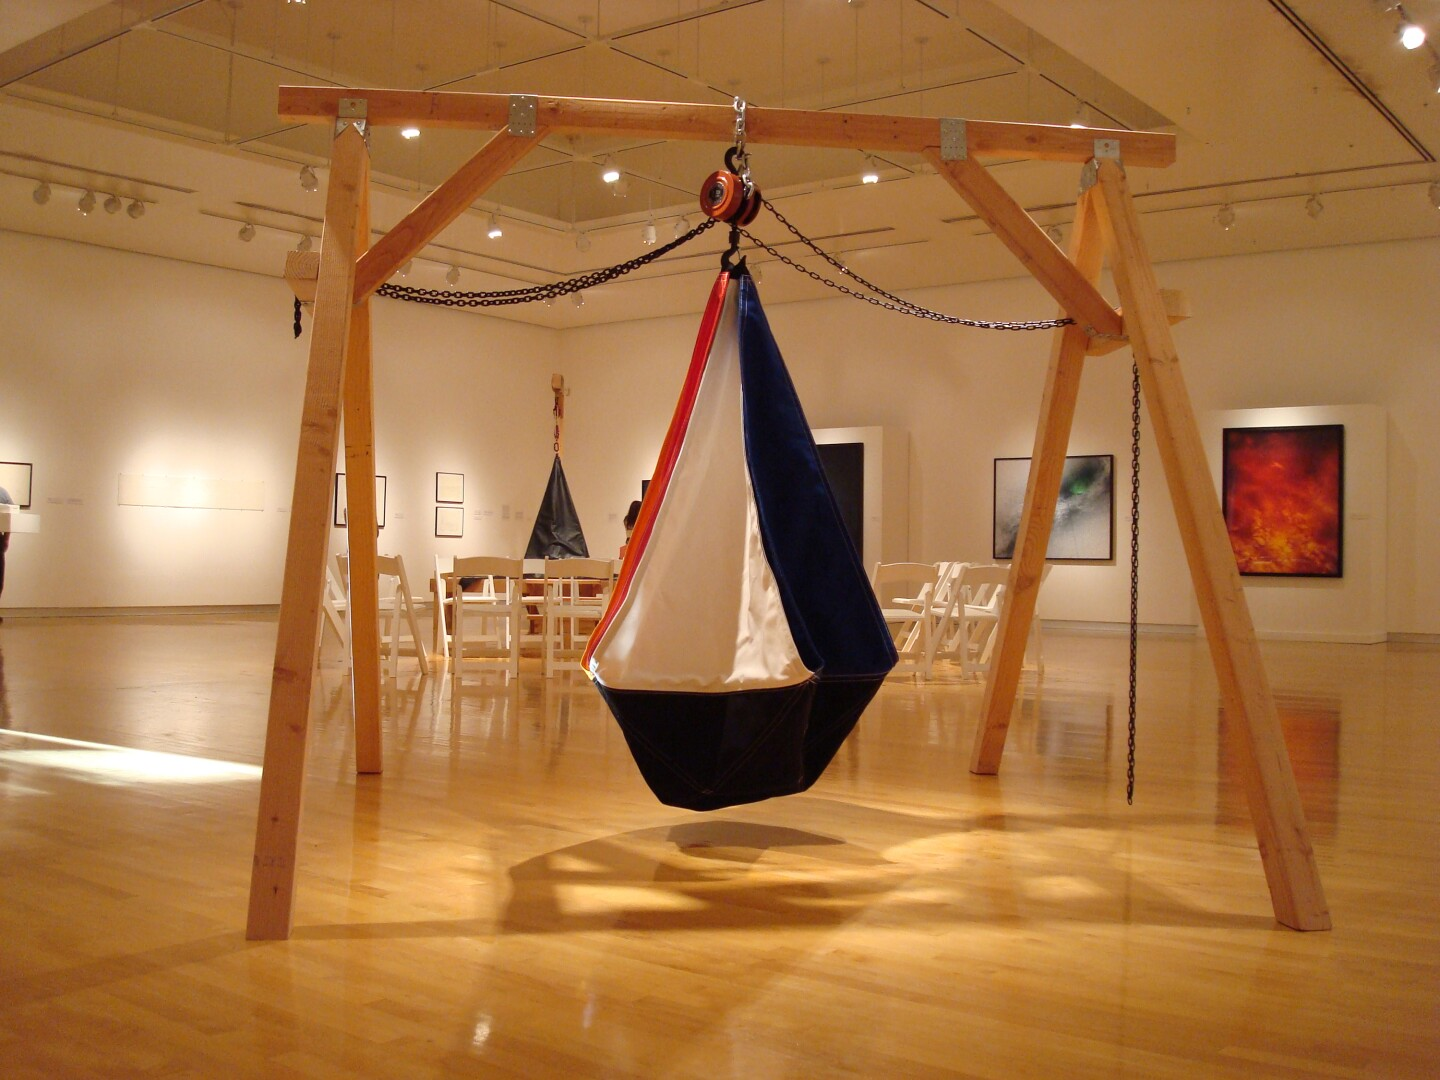 A large sack hangs from a frame.